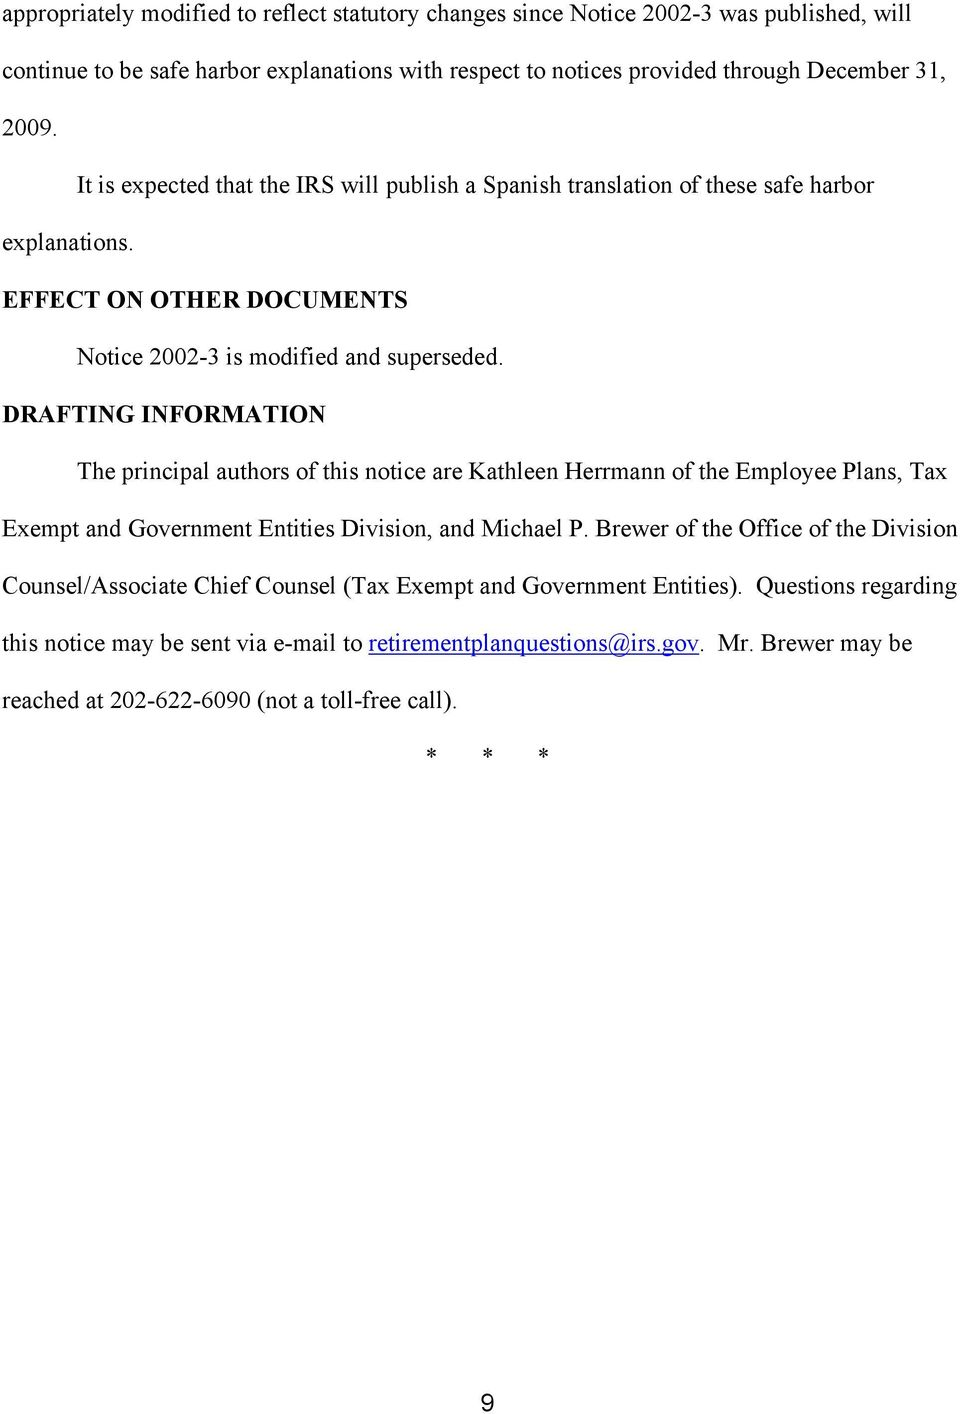 DRAFTING INFORMATION The principal authors of this notice are Kathleen Herrmann of the Employee Plans, Tax Exempt and Government Entities Division, and Michael P.